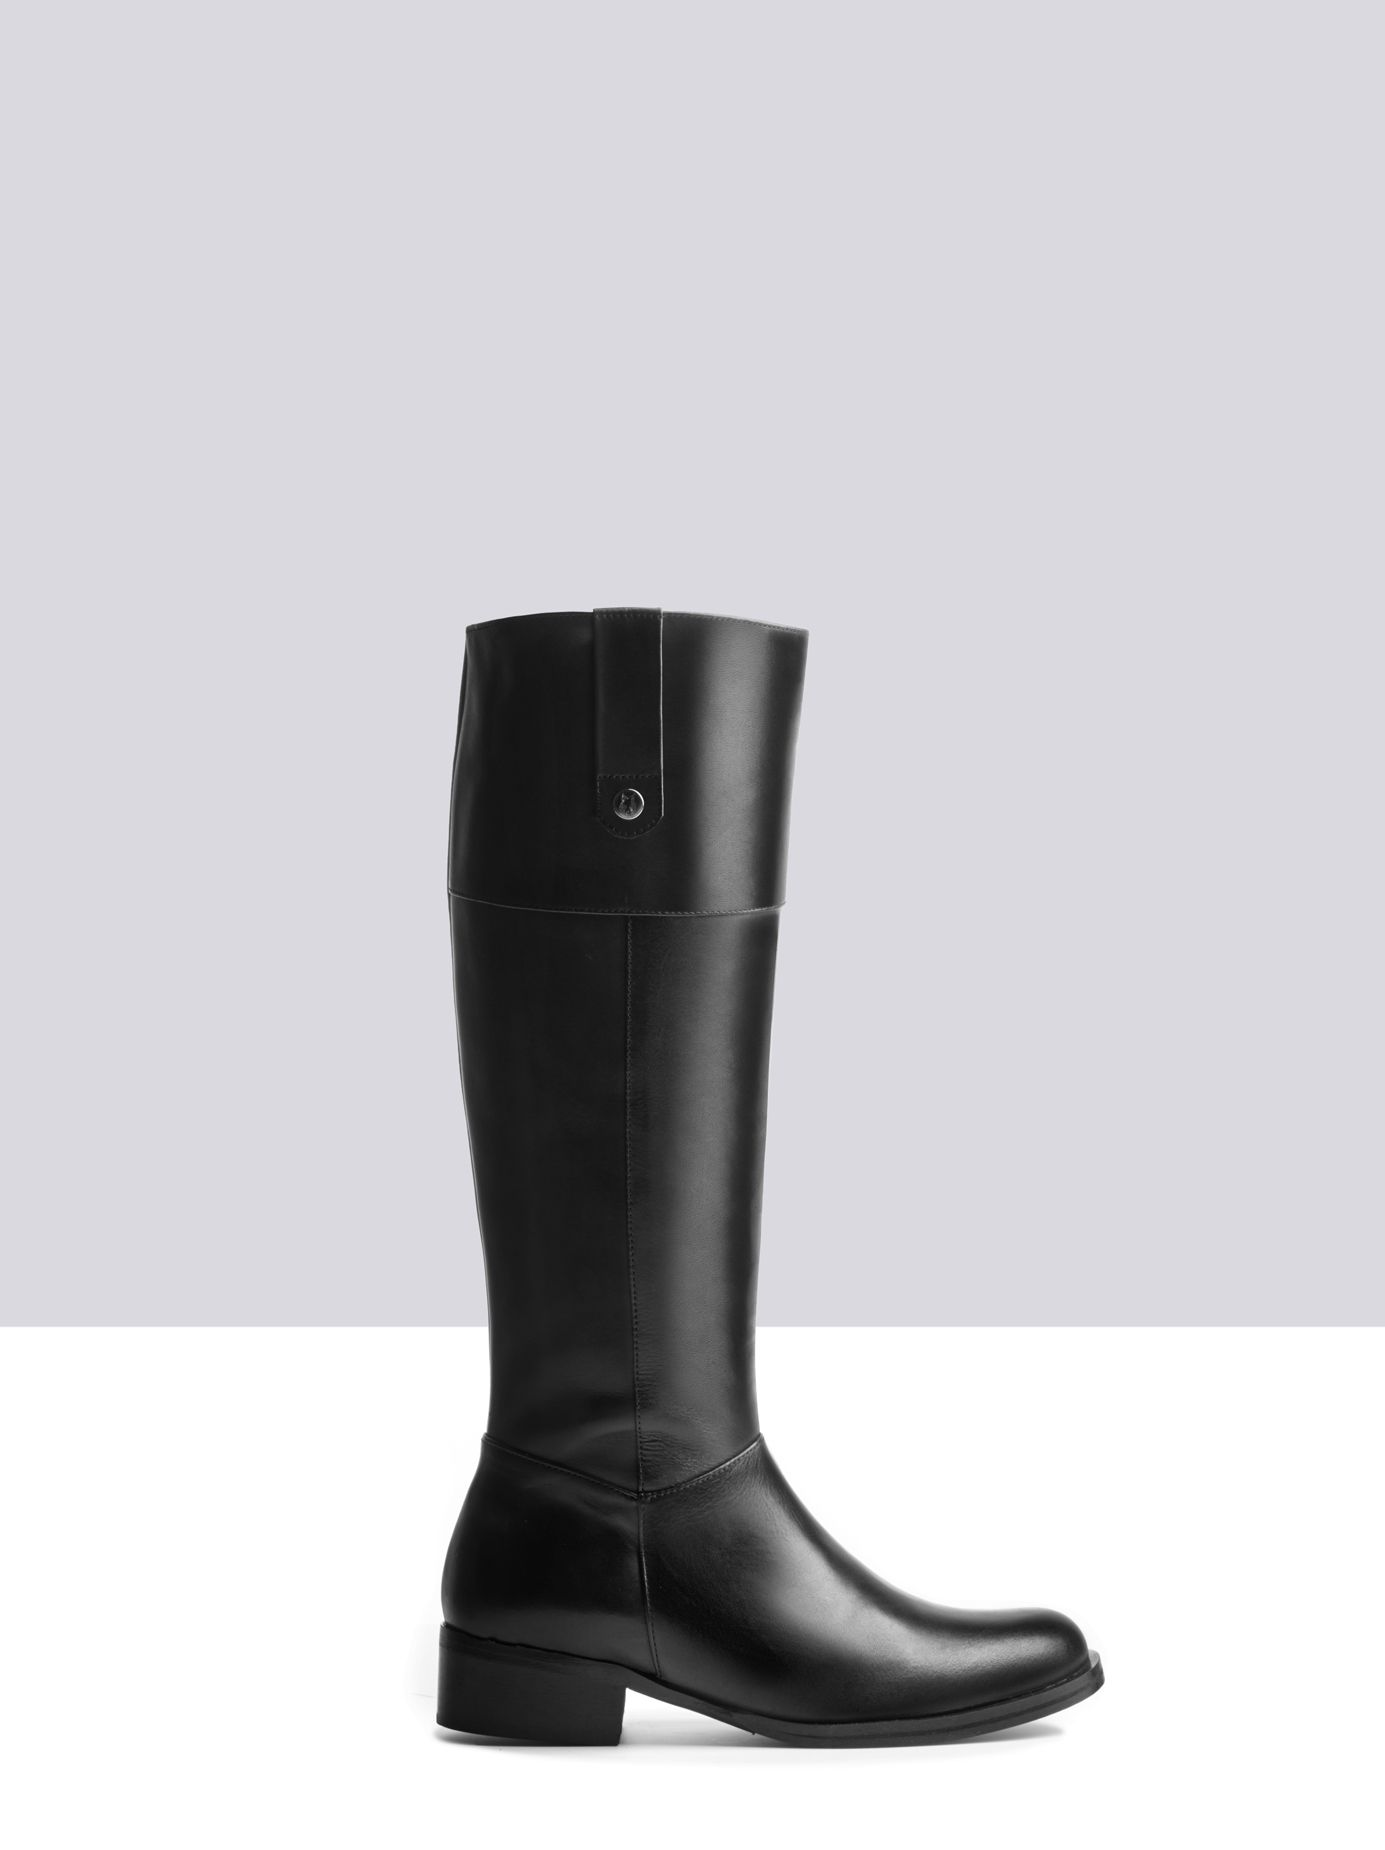 1000  images about Boots on Pinterest | Woman clothing, Knee high ...